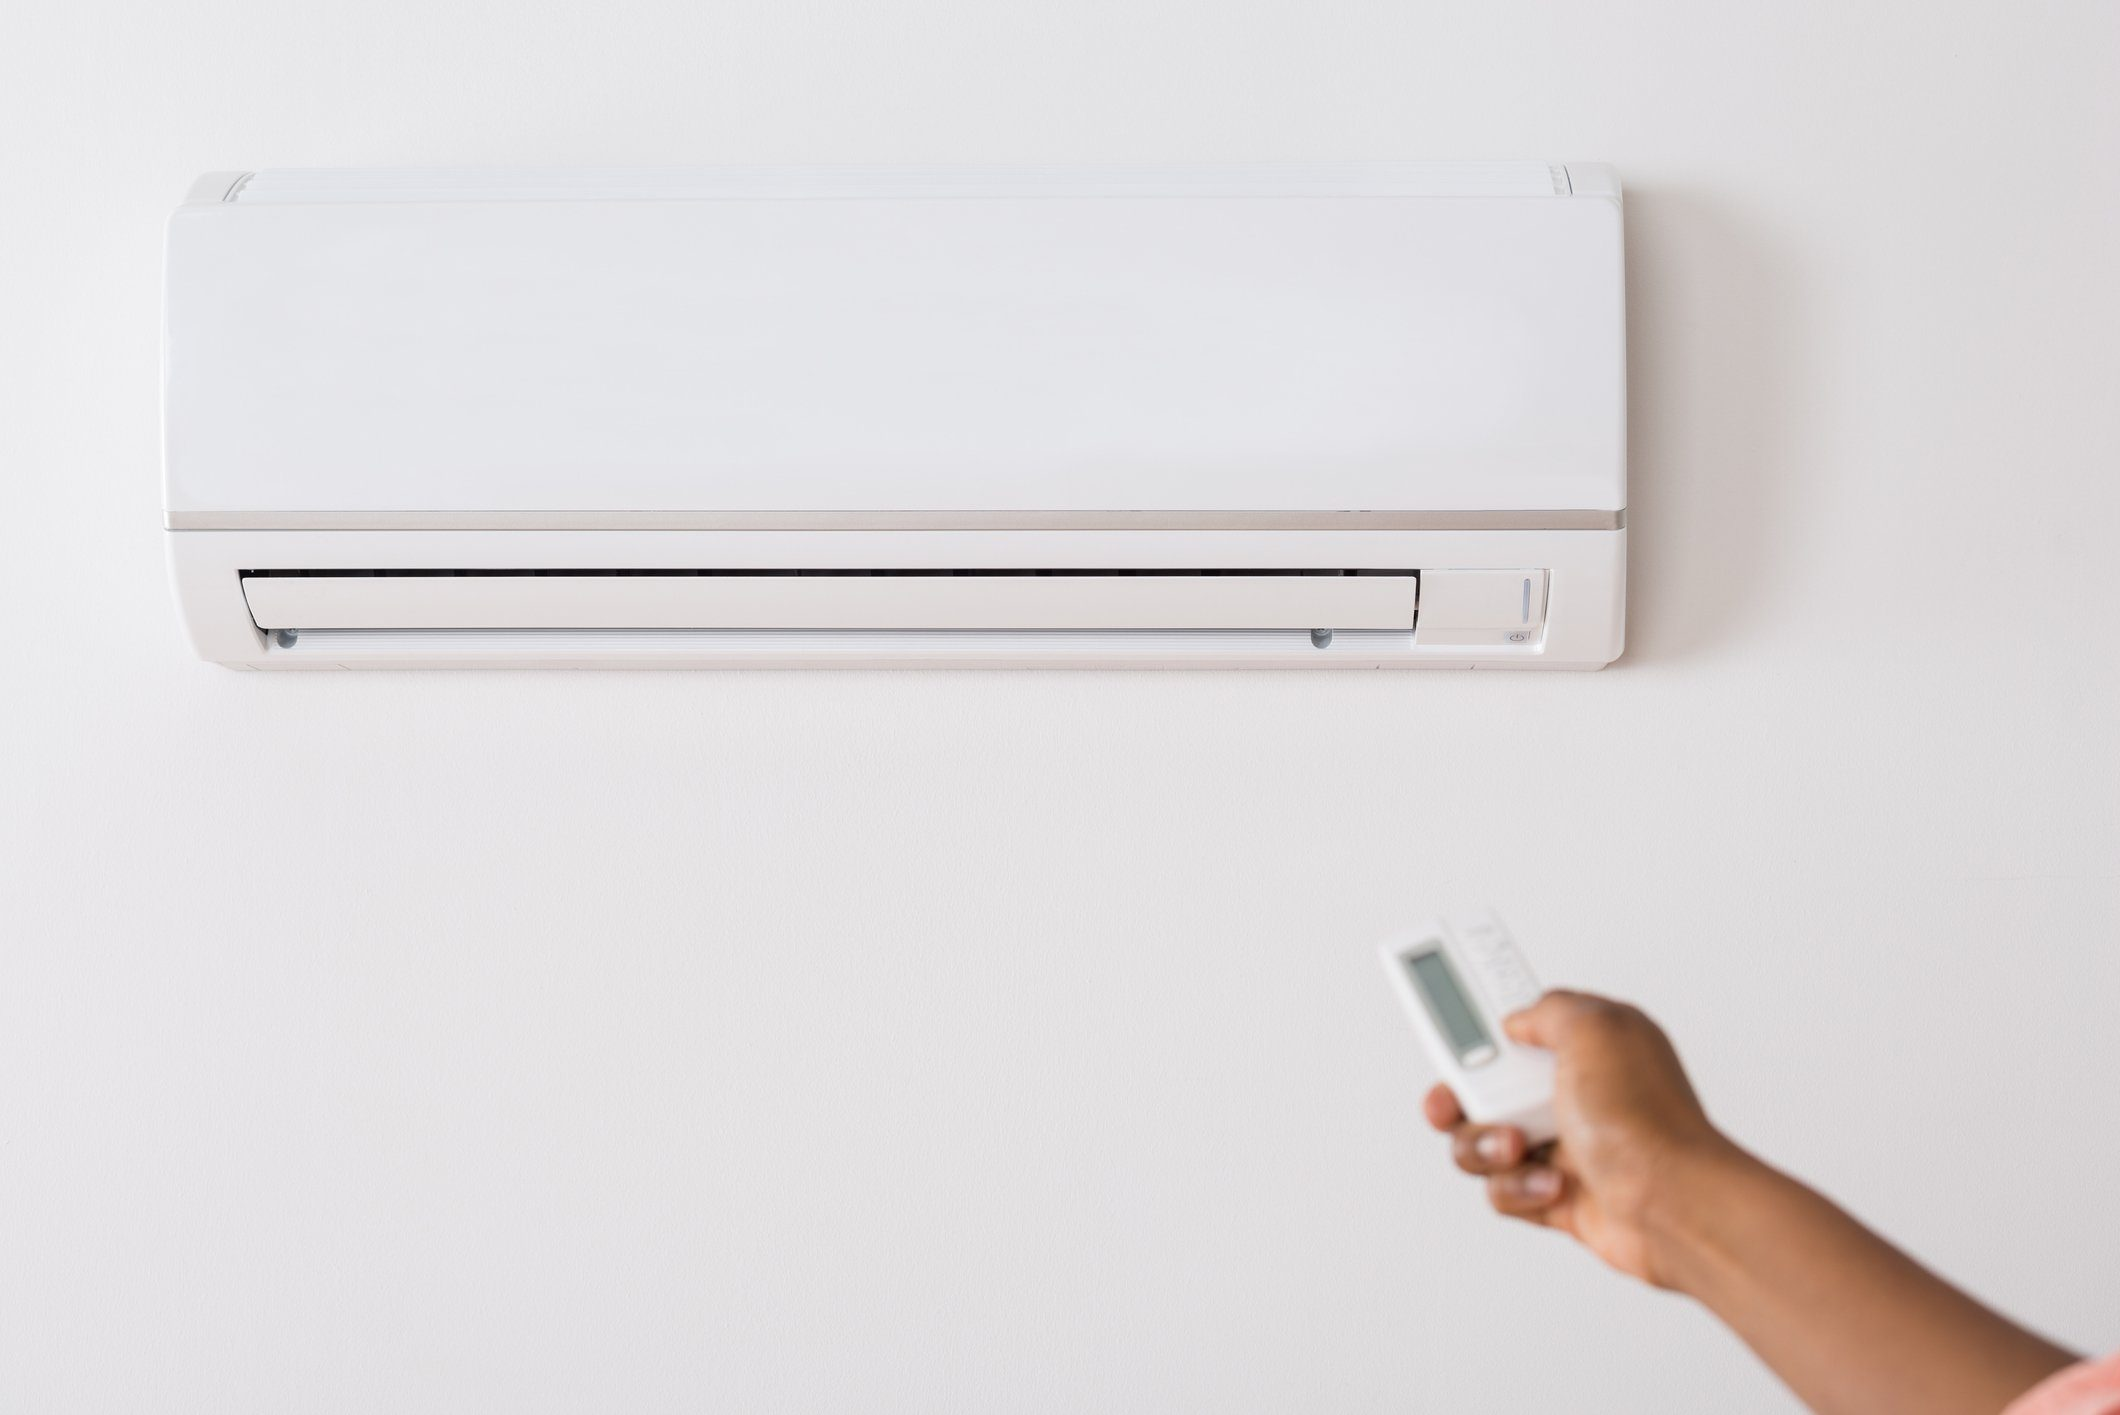 Person's Hand Holding Remote To Operate Air Conditioner